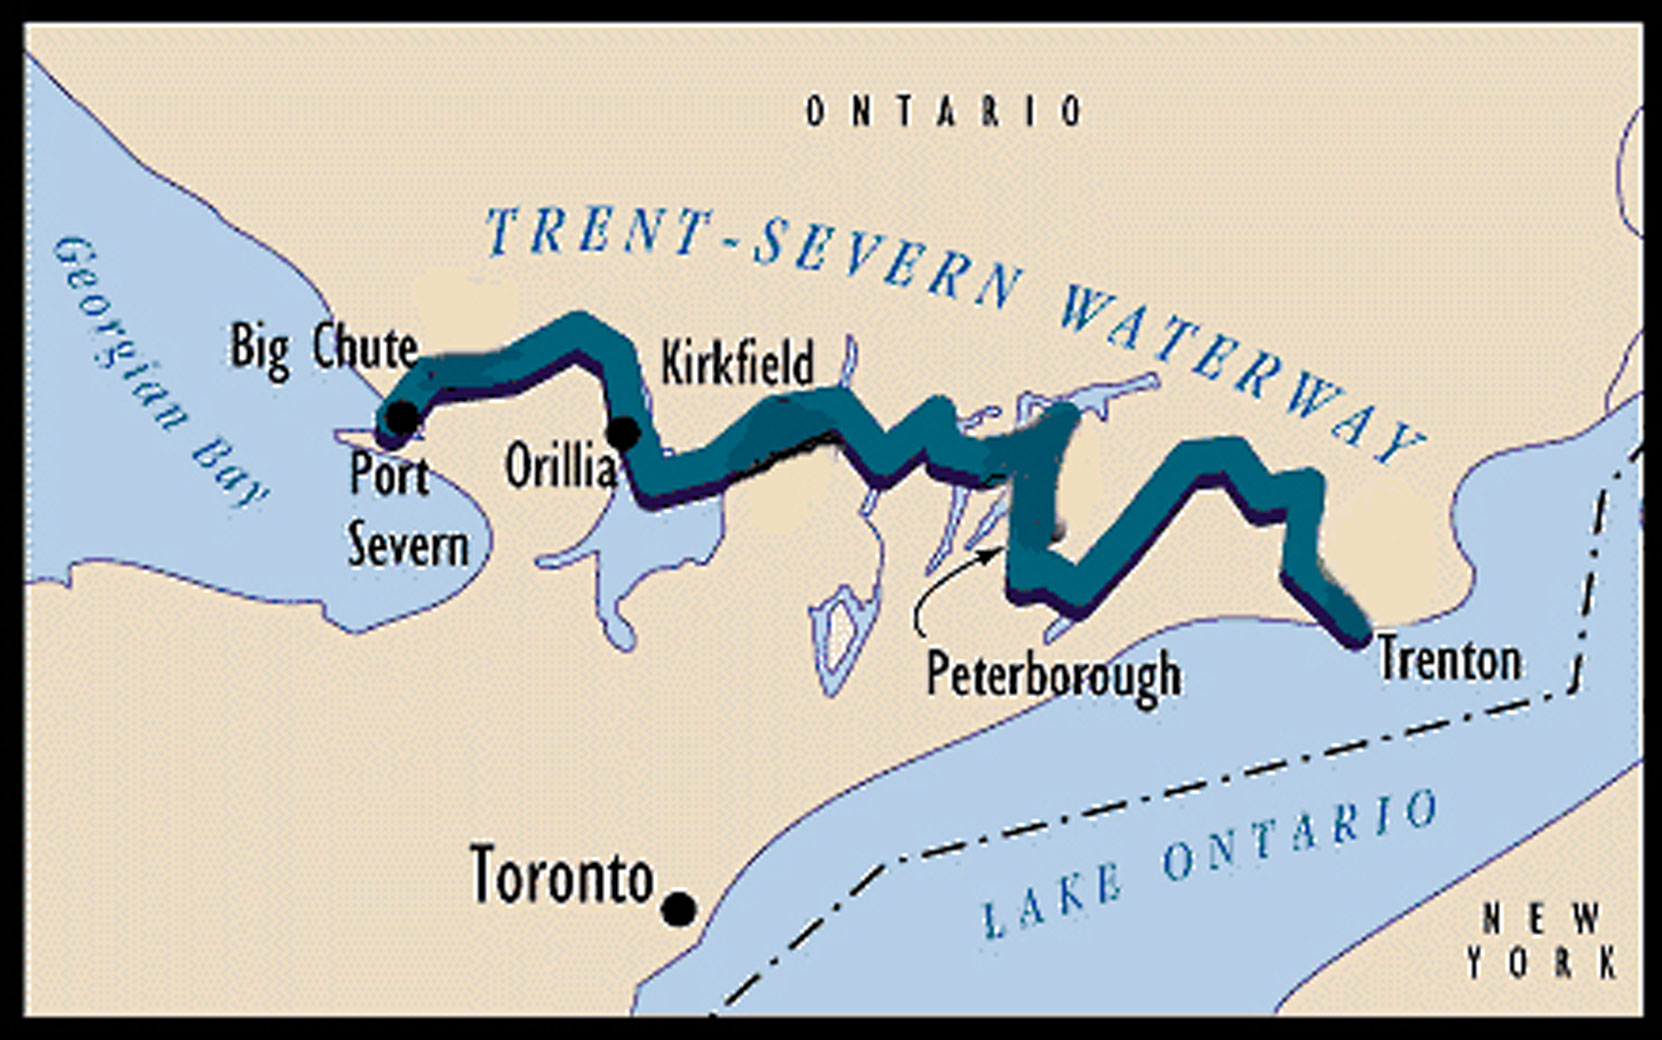 Trent-Severn Waterway map (courtesy of Parks Canada)